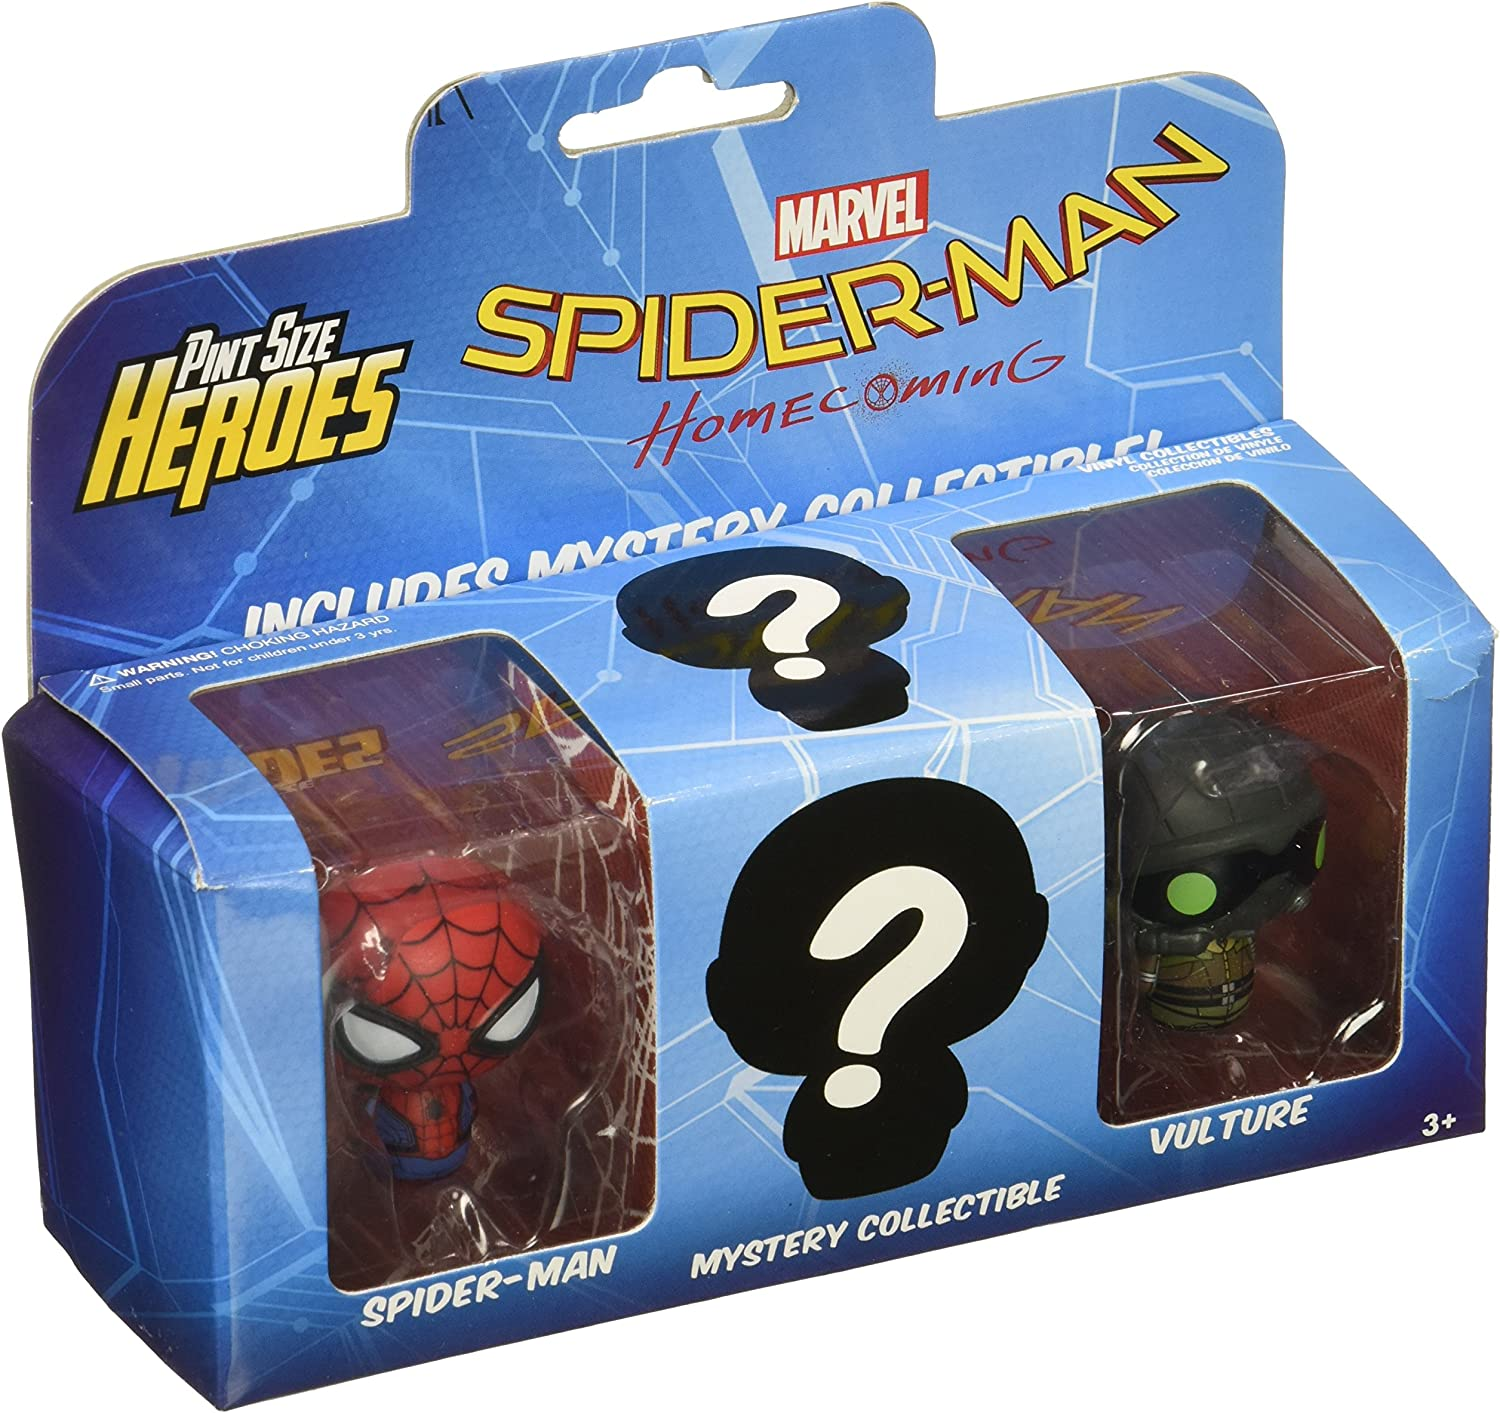 Funko Pint Size Heroes Spider-Man Homecoming 3 Pack 13439 Spider-Man, Buitre y 1 Figura misteriosa: Funko Pint Size Heroes:: Amazon.es: Juguetes y juegos